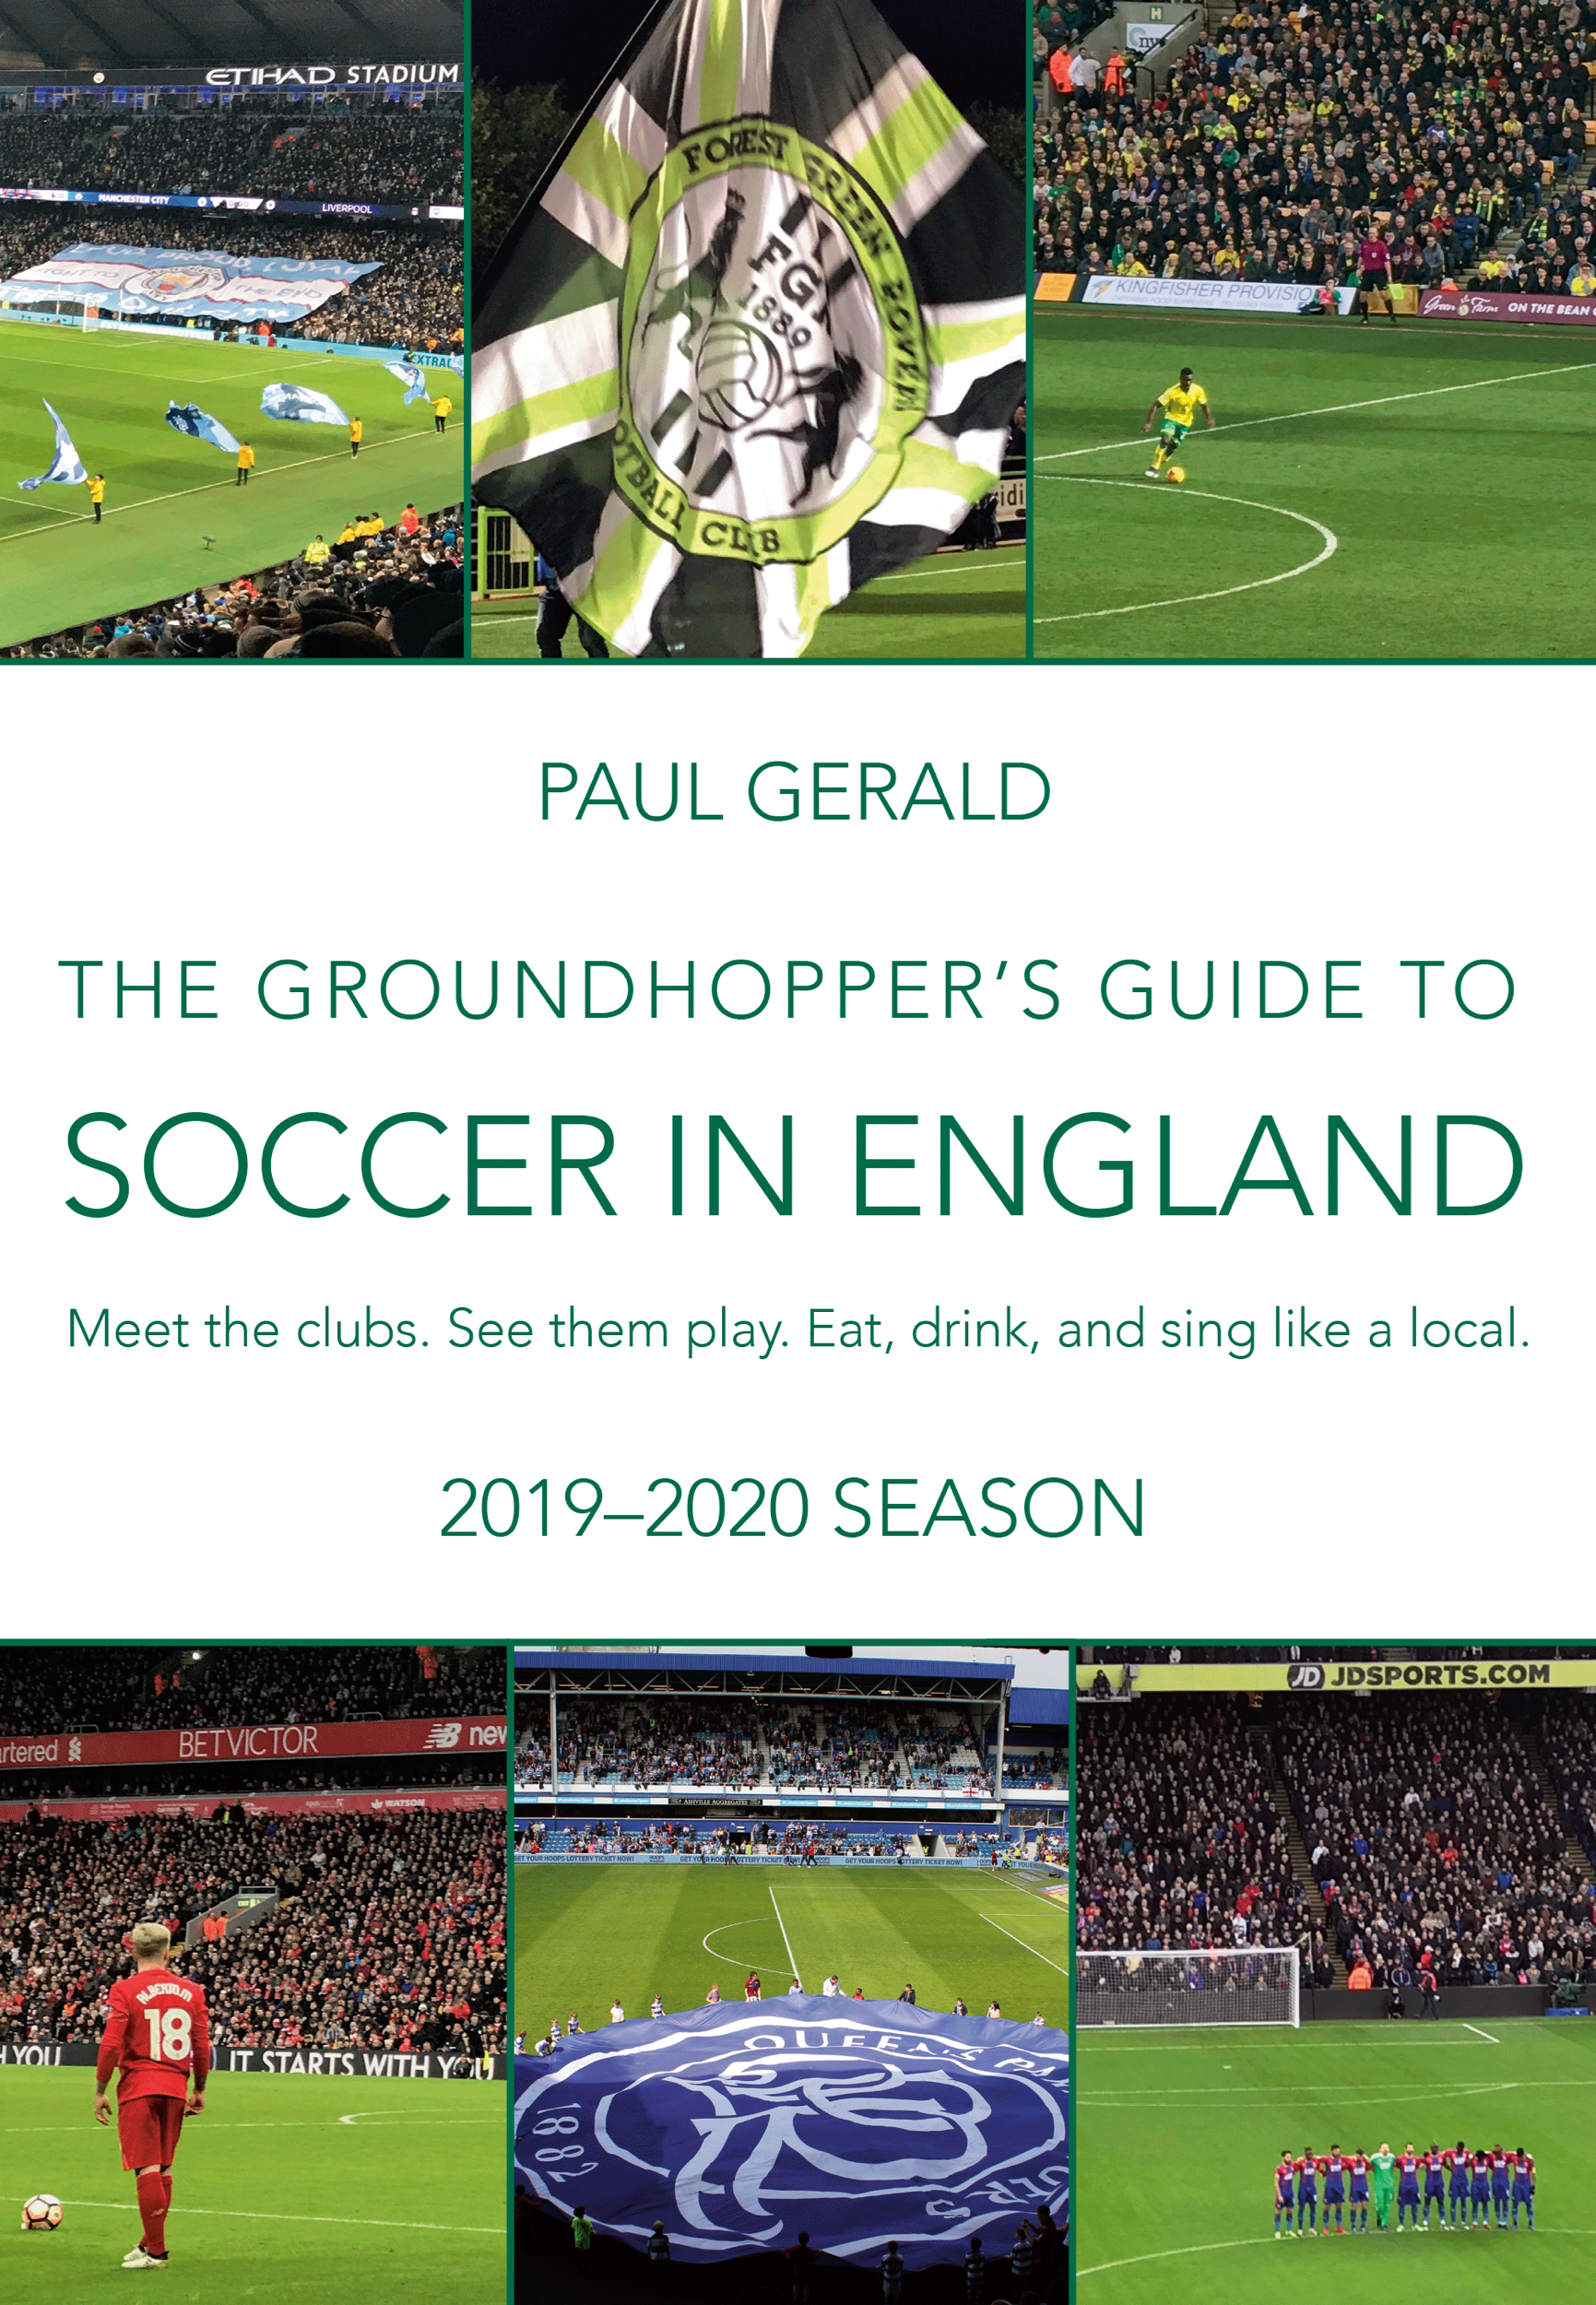 The Grasshopper's Guide to Soccer in England: 2019-2020 Season by Paul Gerald (Bacon & Eggs Press, August 2019)